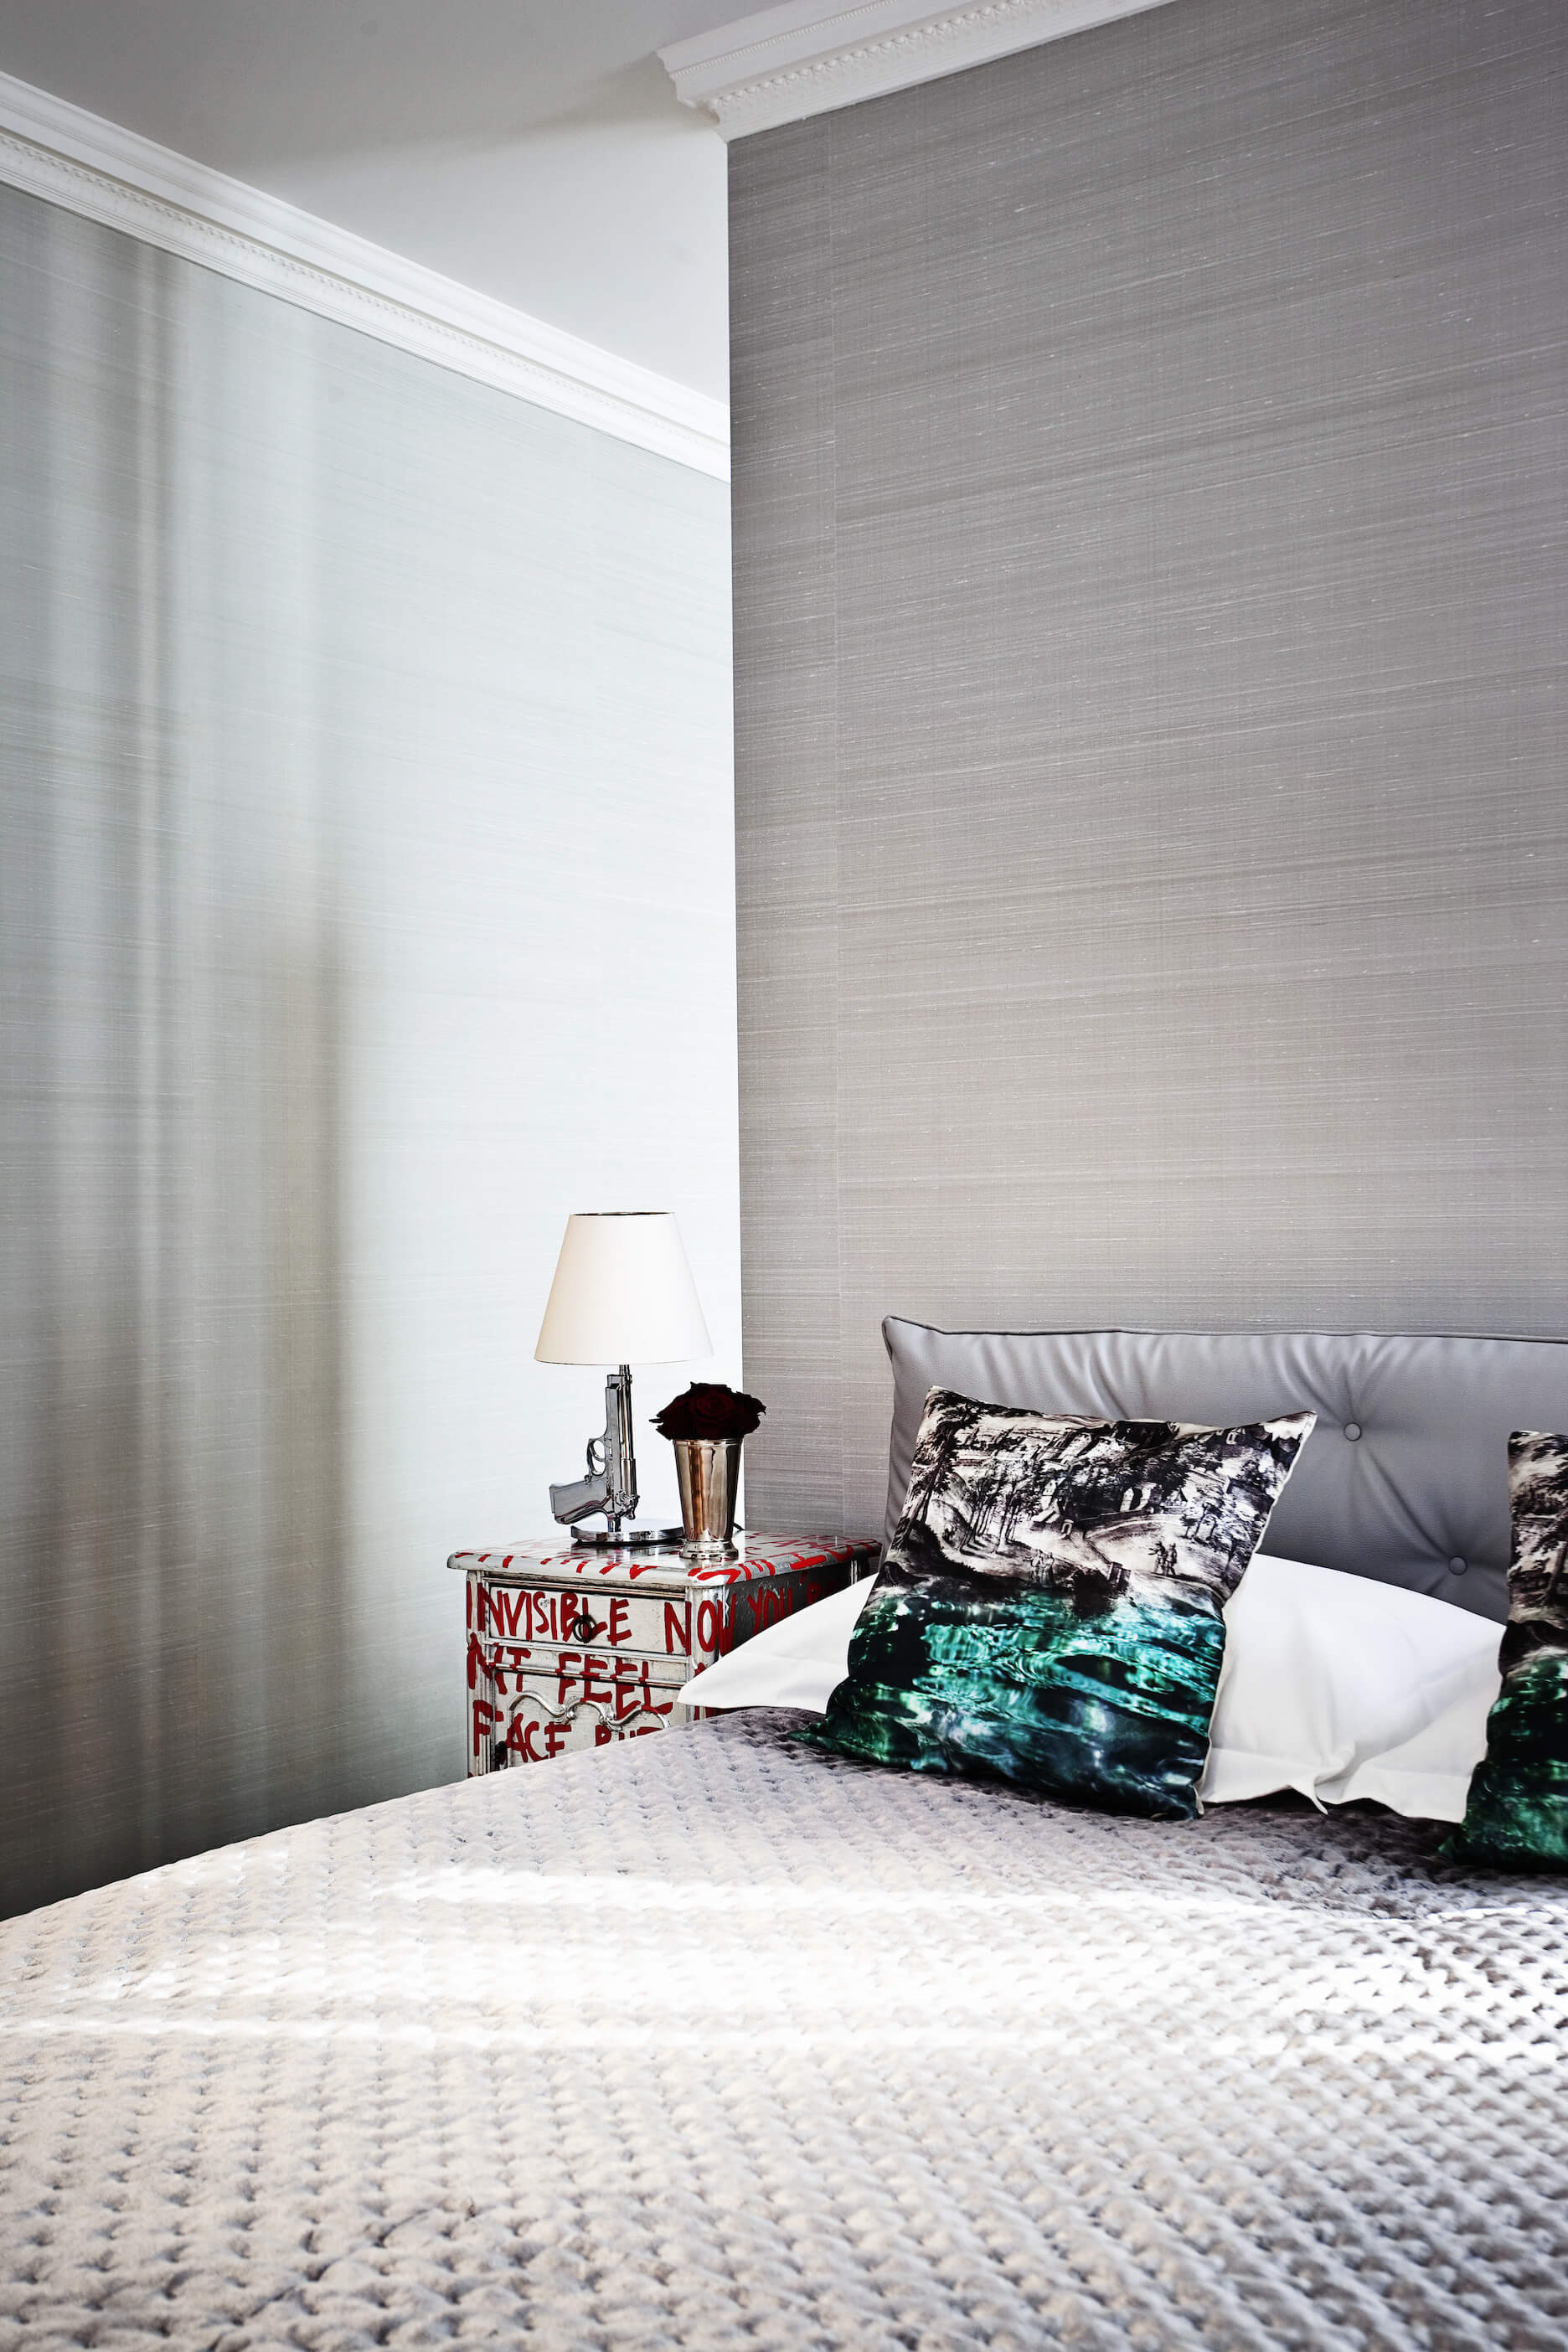 Another bedroom, in a complete turn of style, stands out in silver tones, with brushed look walls above a uniquely textured bed set.